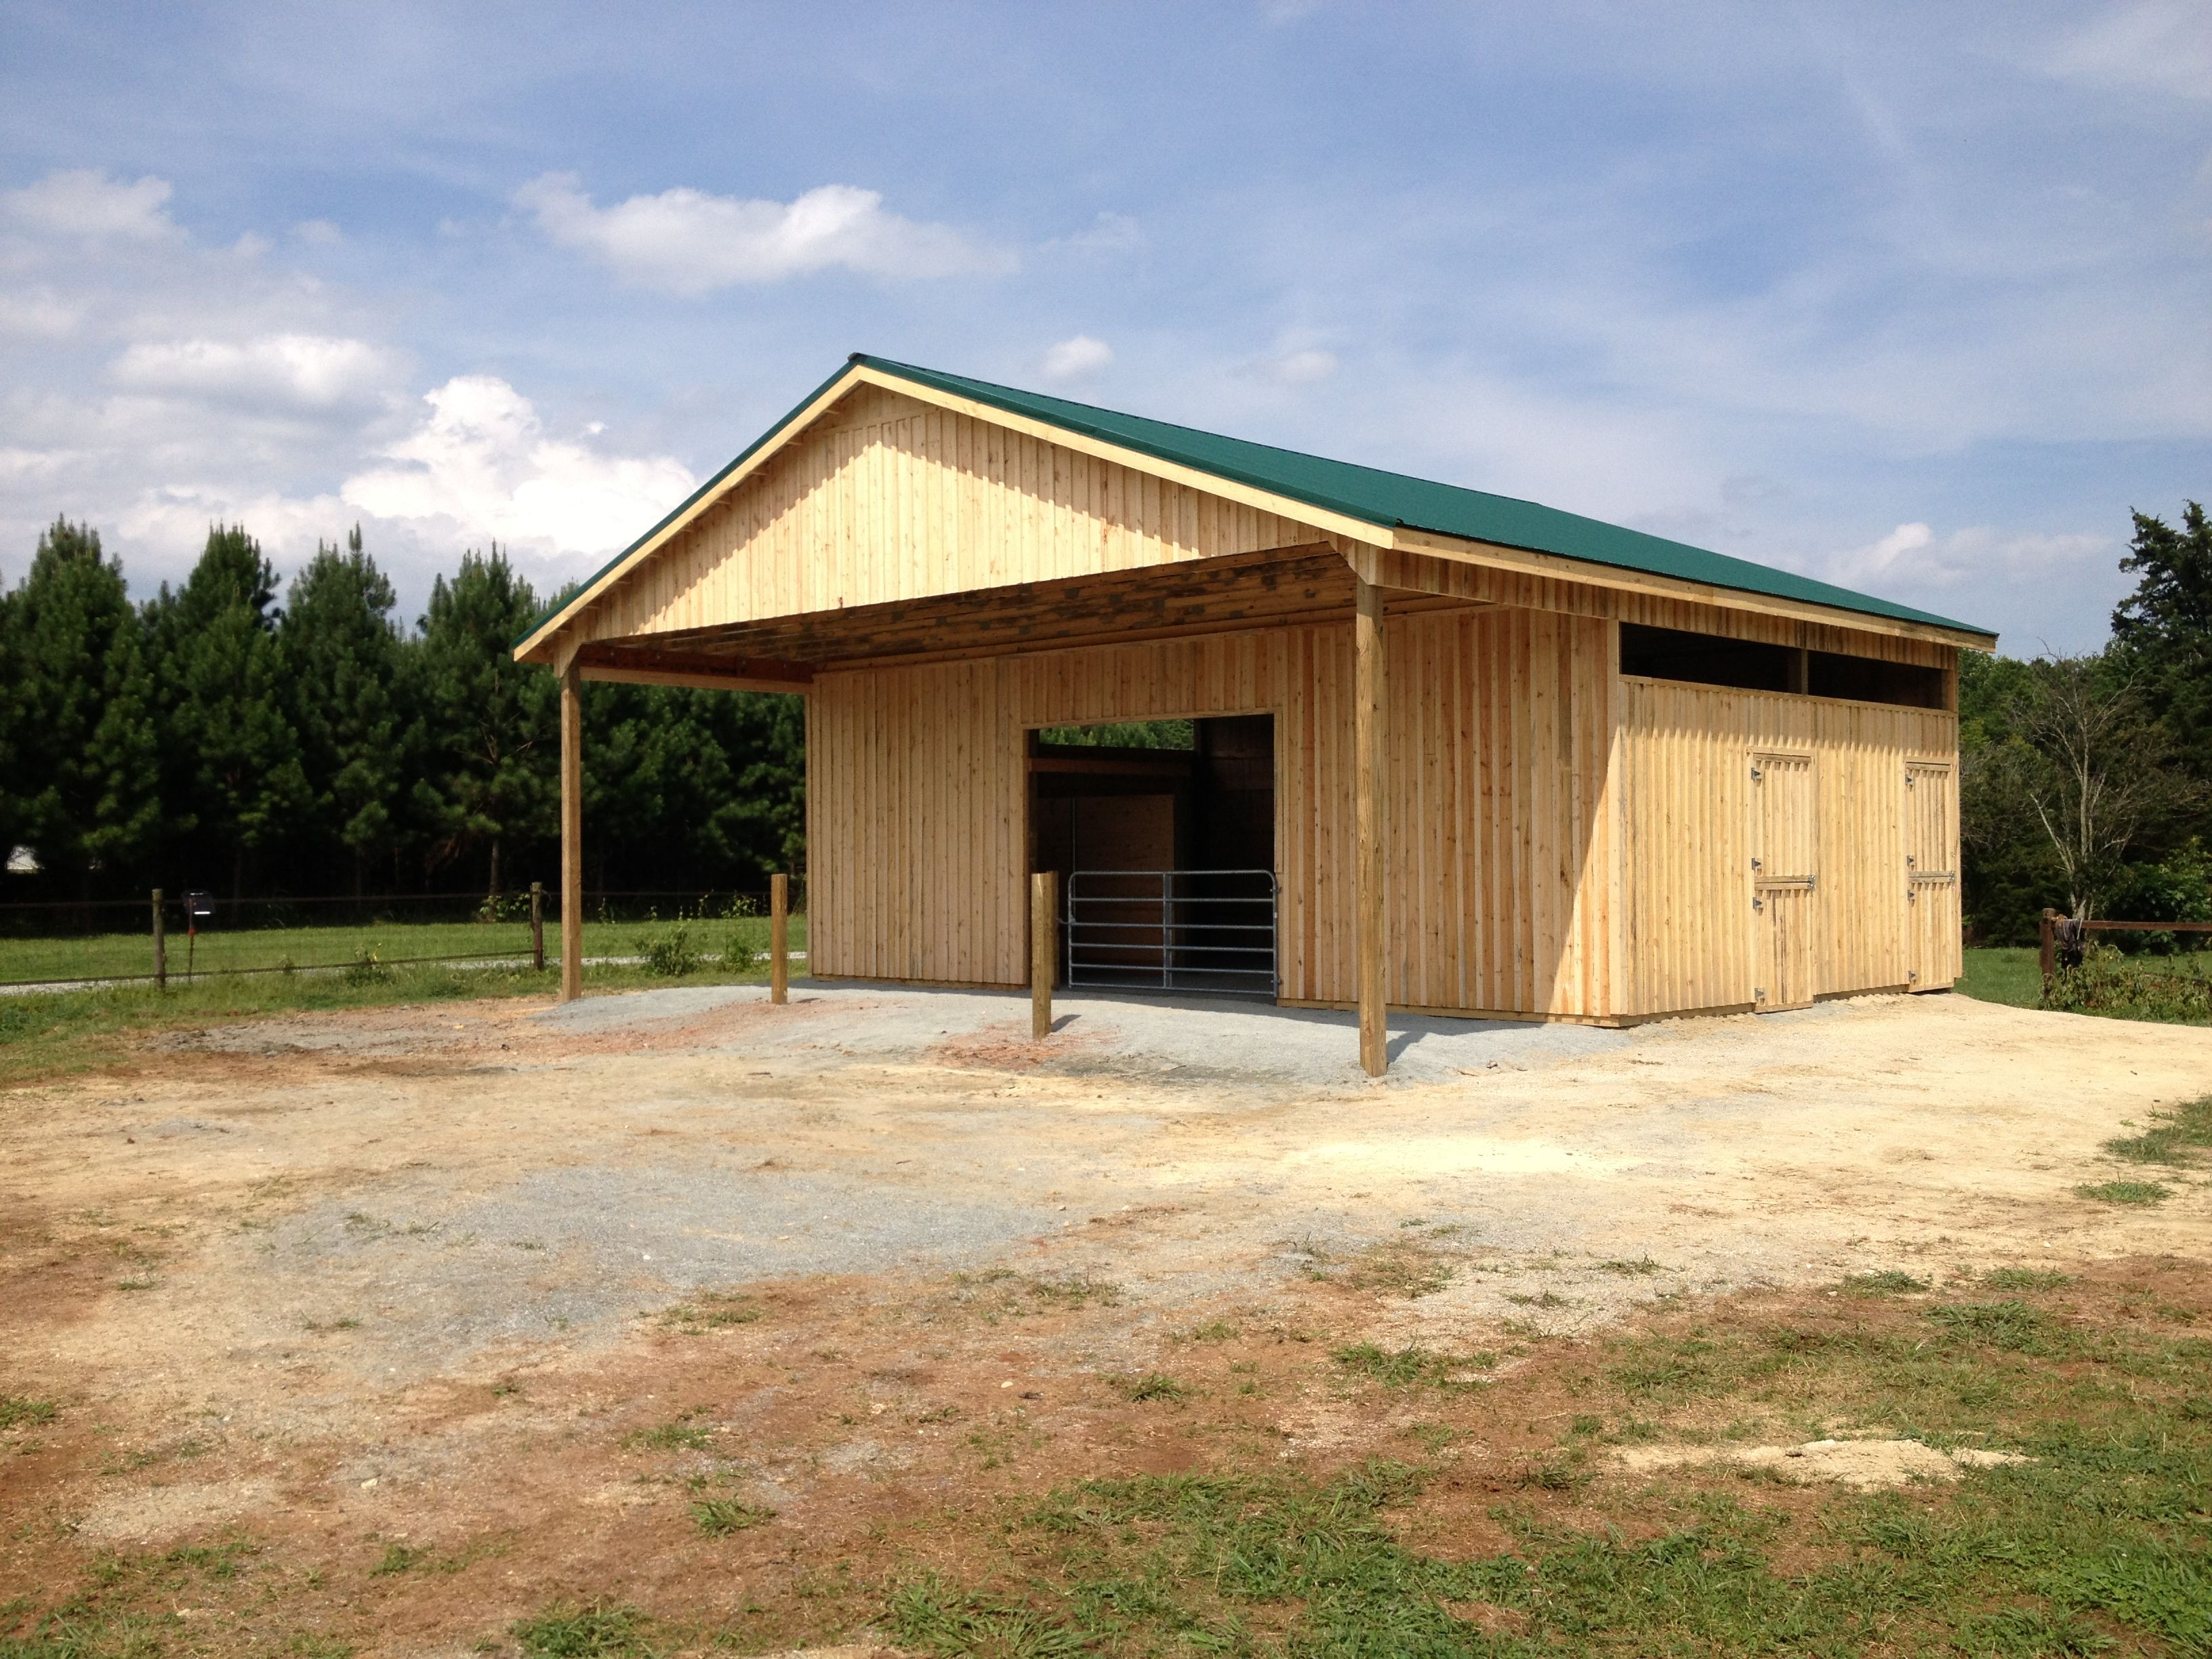 4 stall barn with front porch barn layout horse barns cave creek front